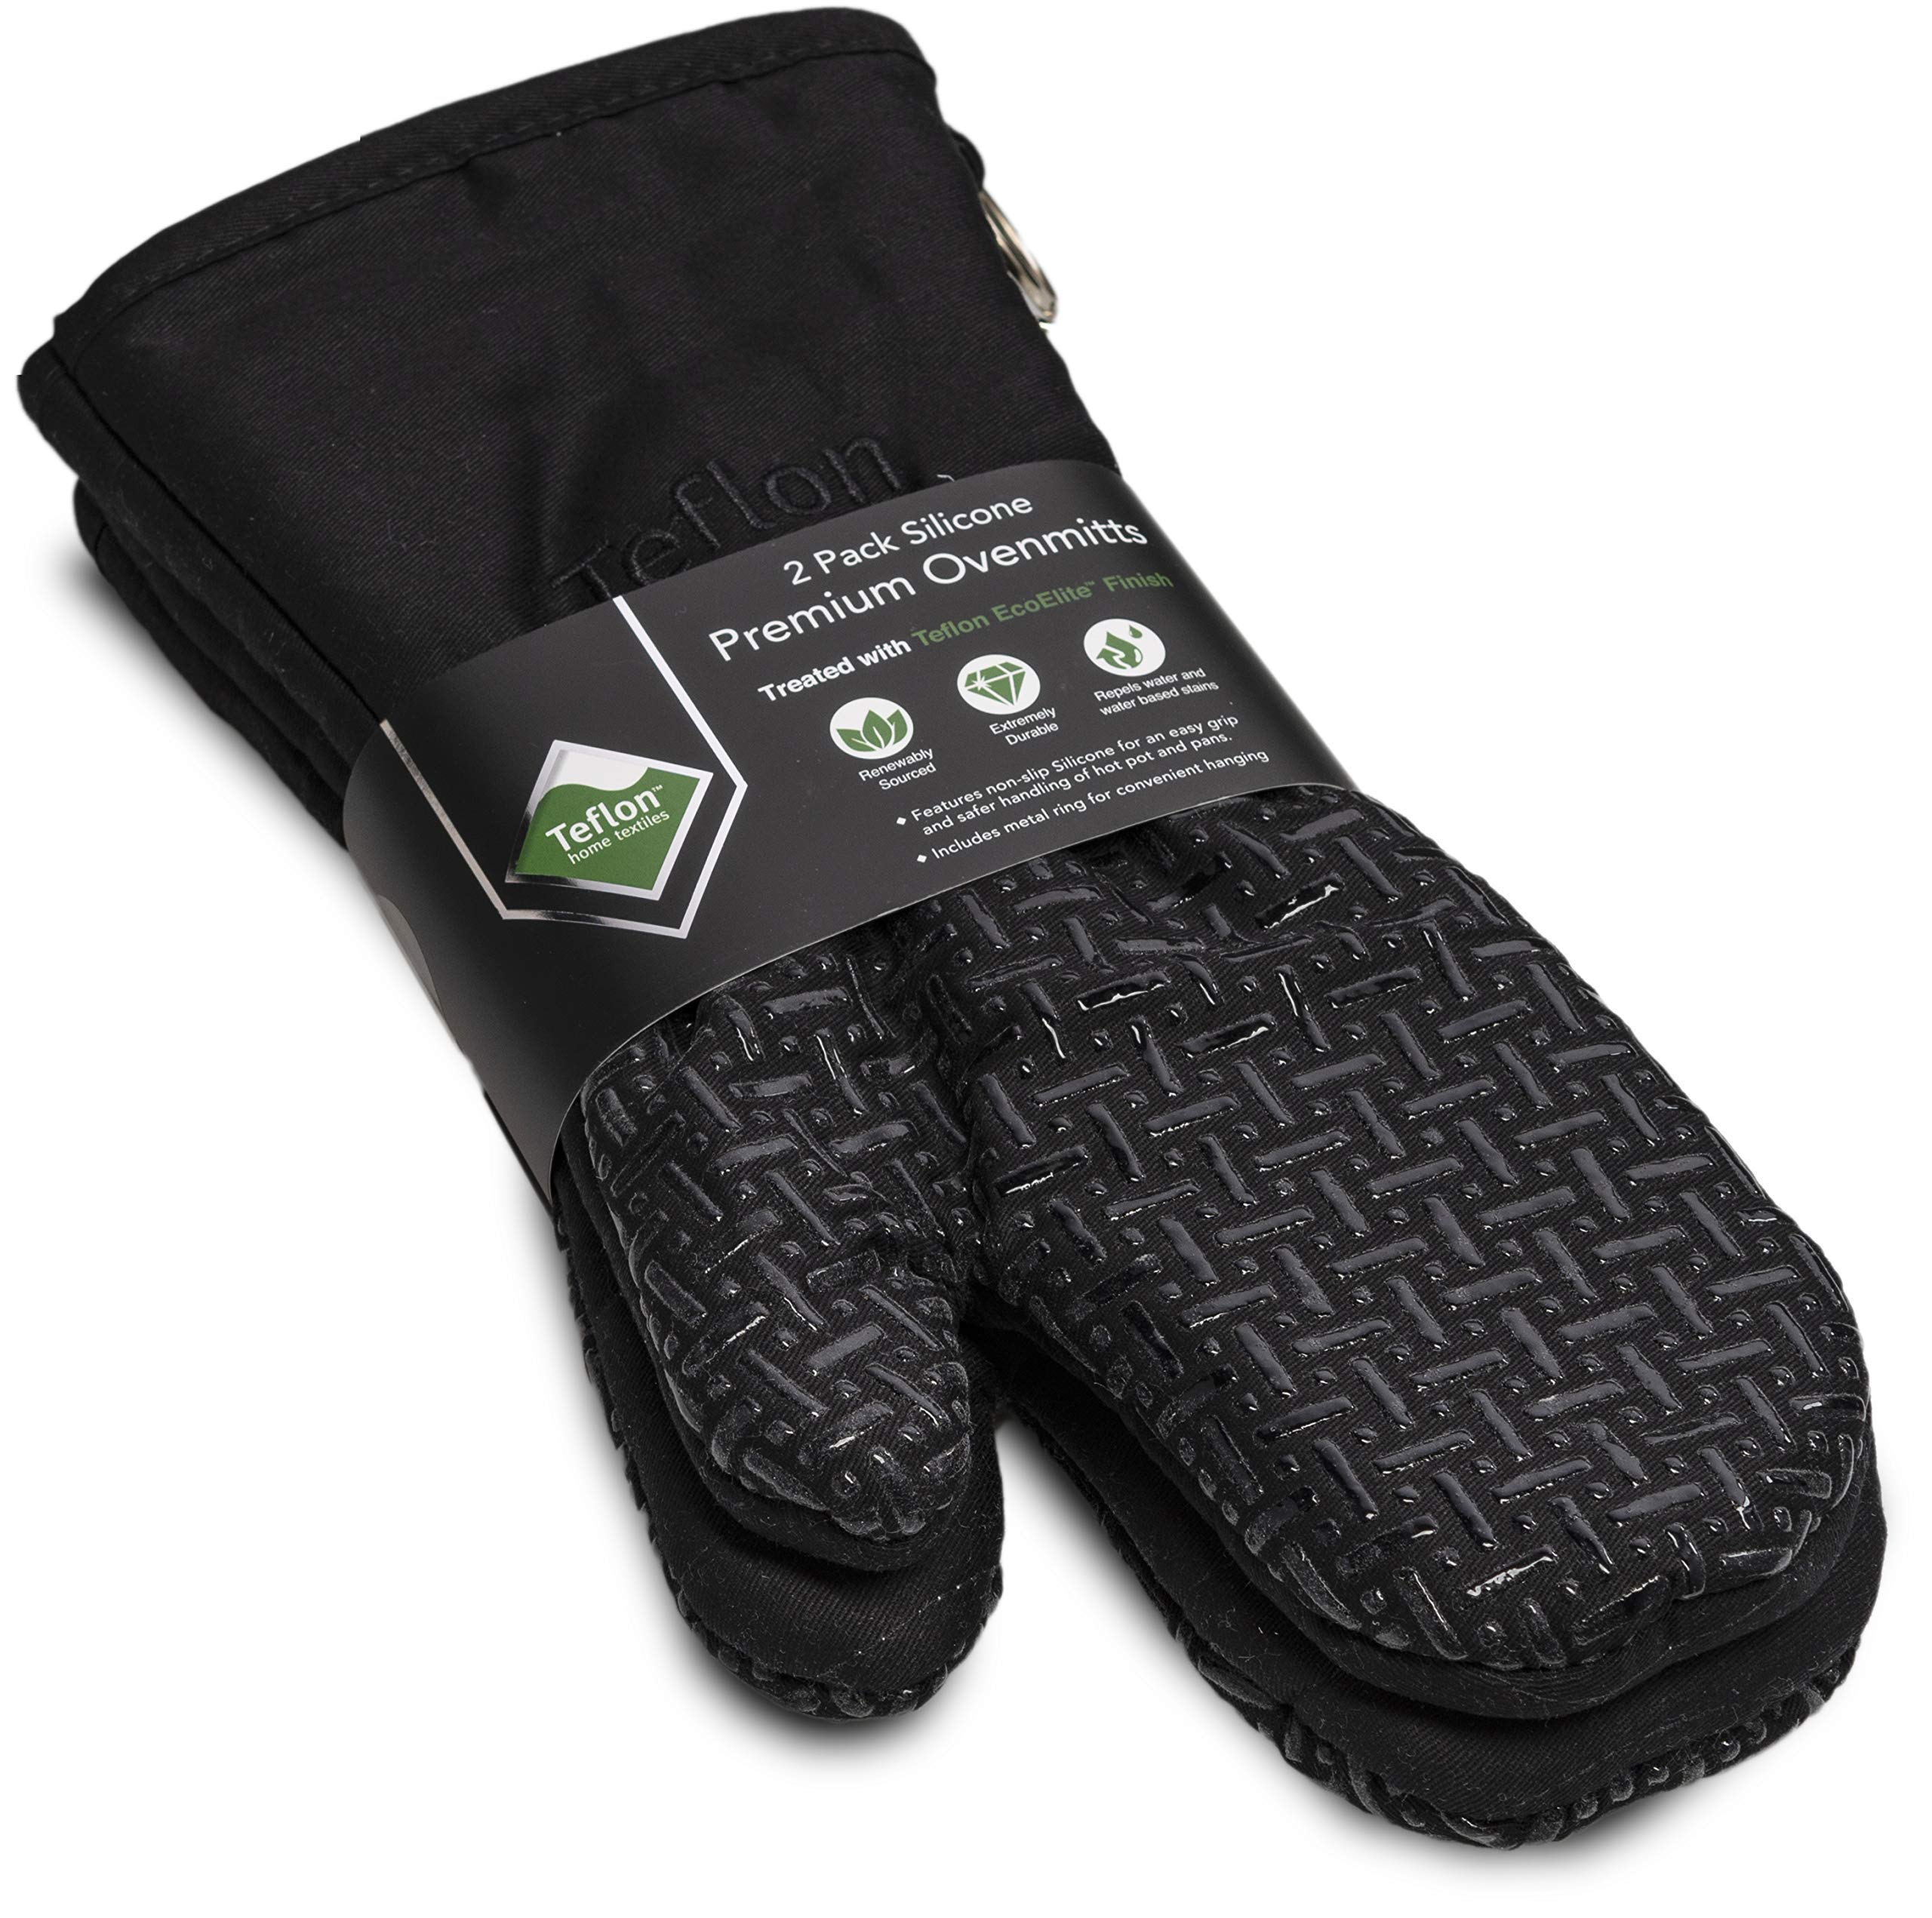 XLNT Extra Long Oven Mitts (Black) | Heat Resistant Kitchen Gloves for Oven Cooking, Grill & BBQ | Non Slip Silicone Gloves with Teflon Eco Elite Coating, Cotton Lining & Hanging Loop